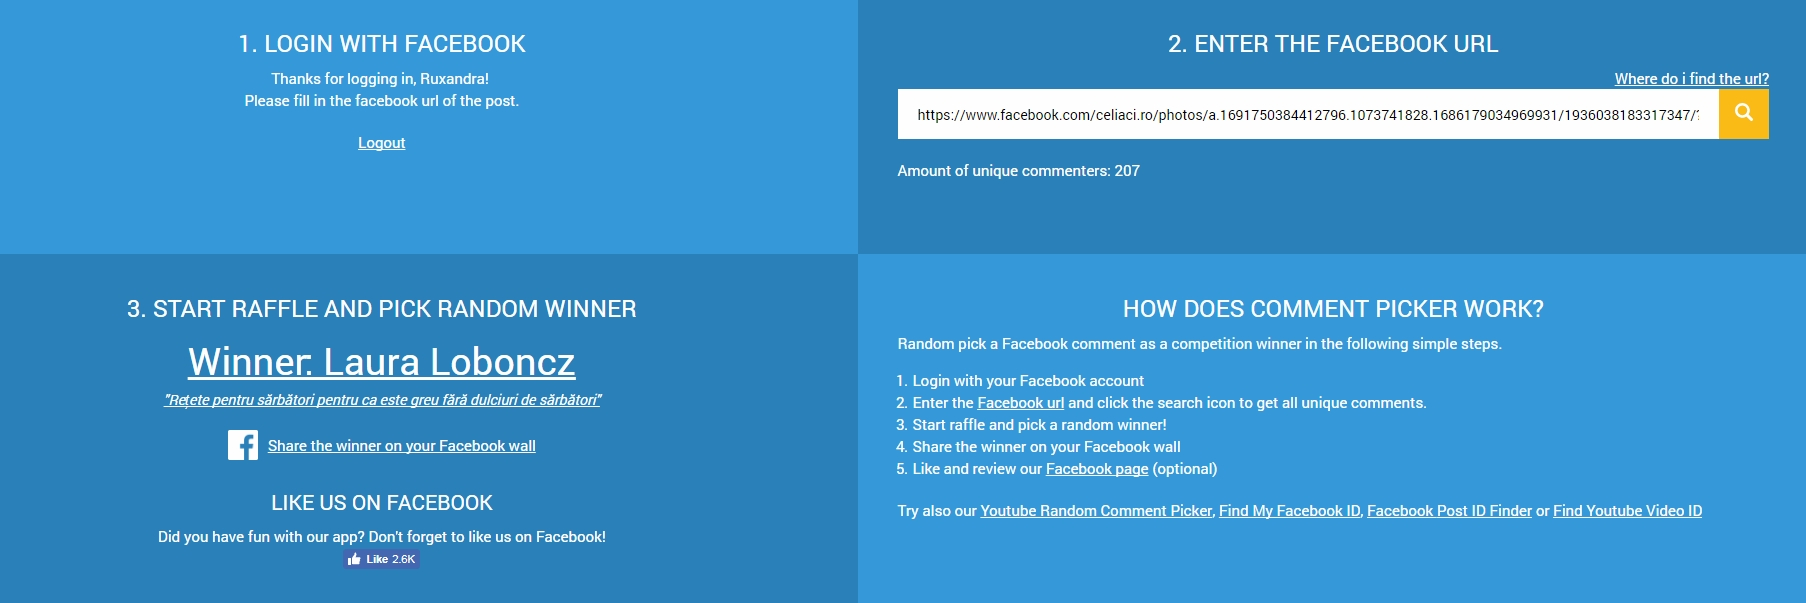 003679-Random Comment Picker for Facebook comments